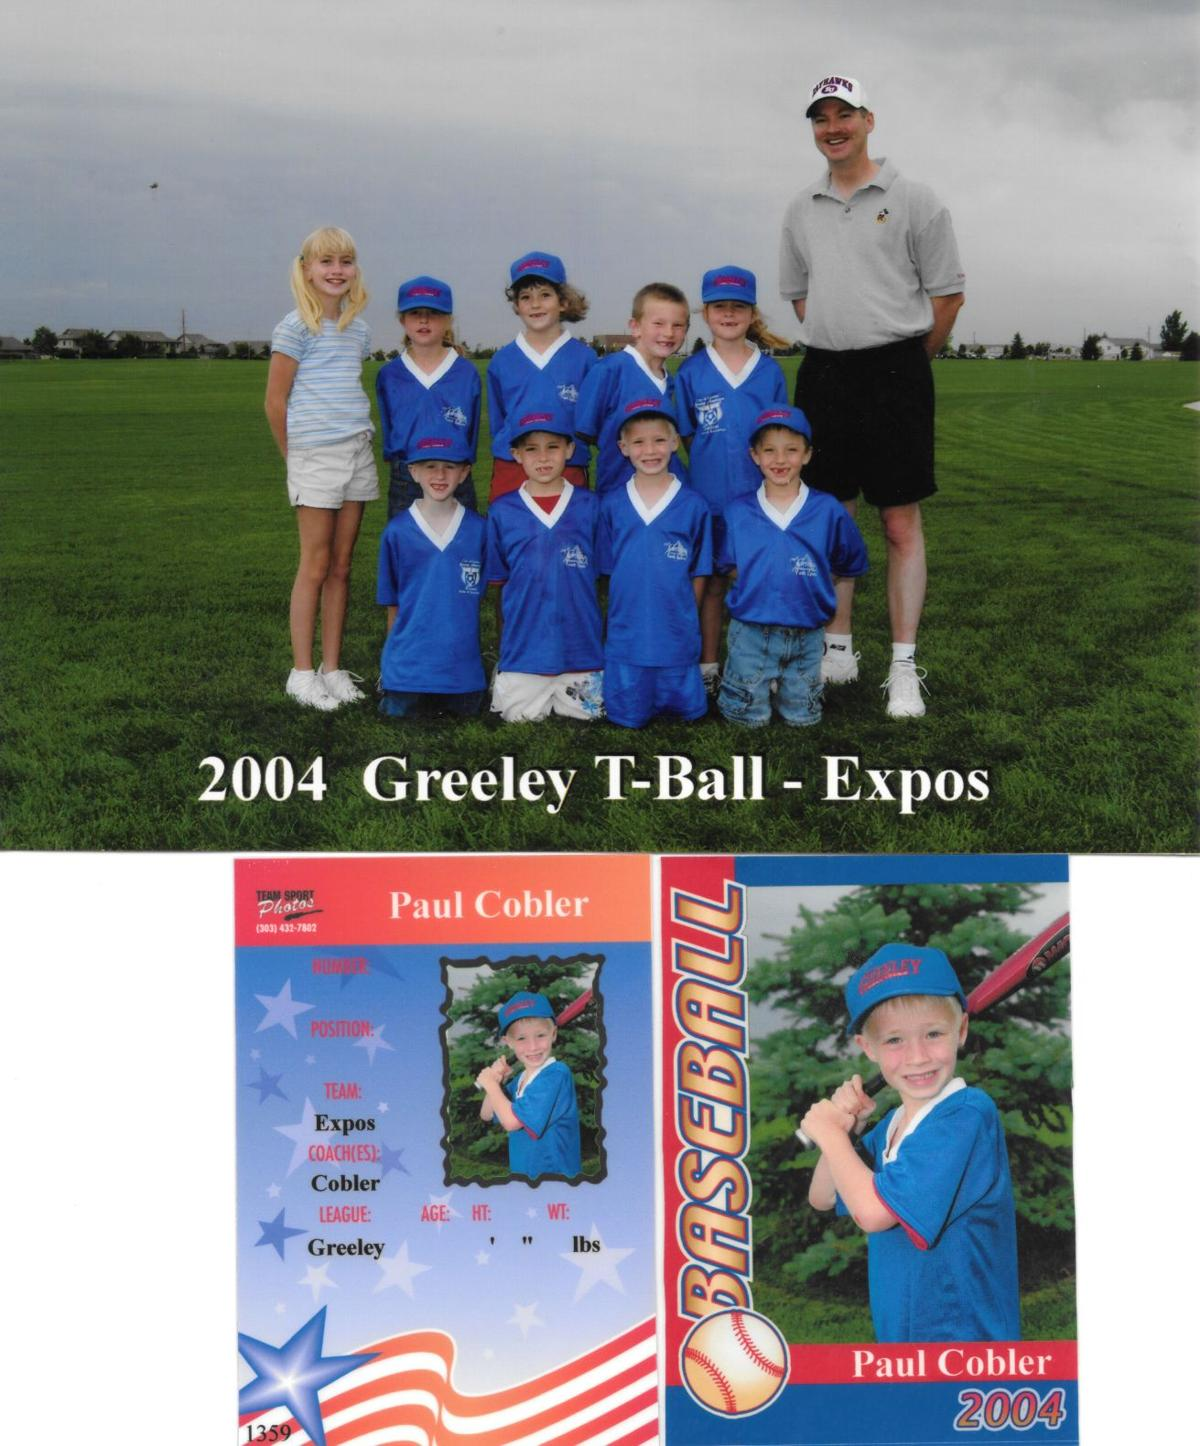 T-ball team in 2004